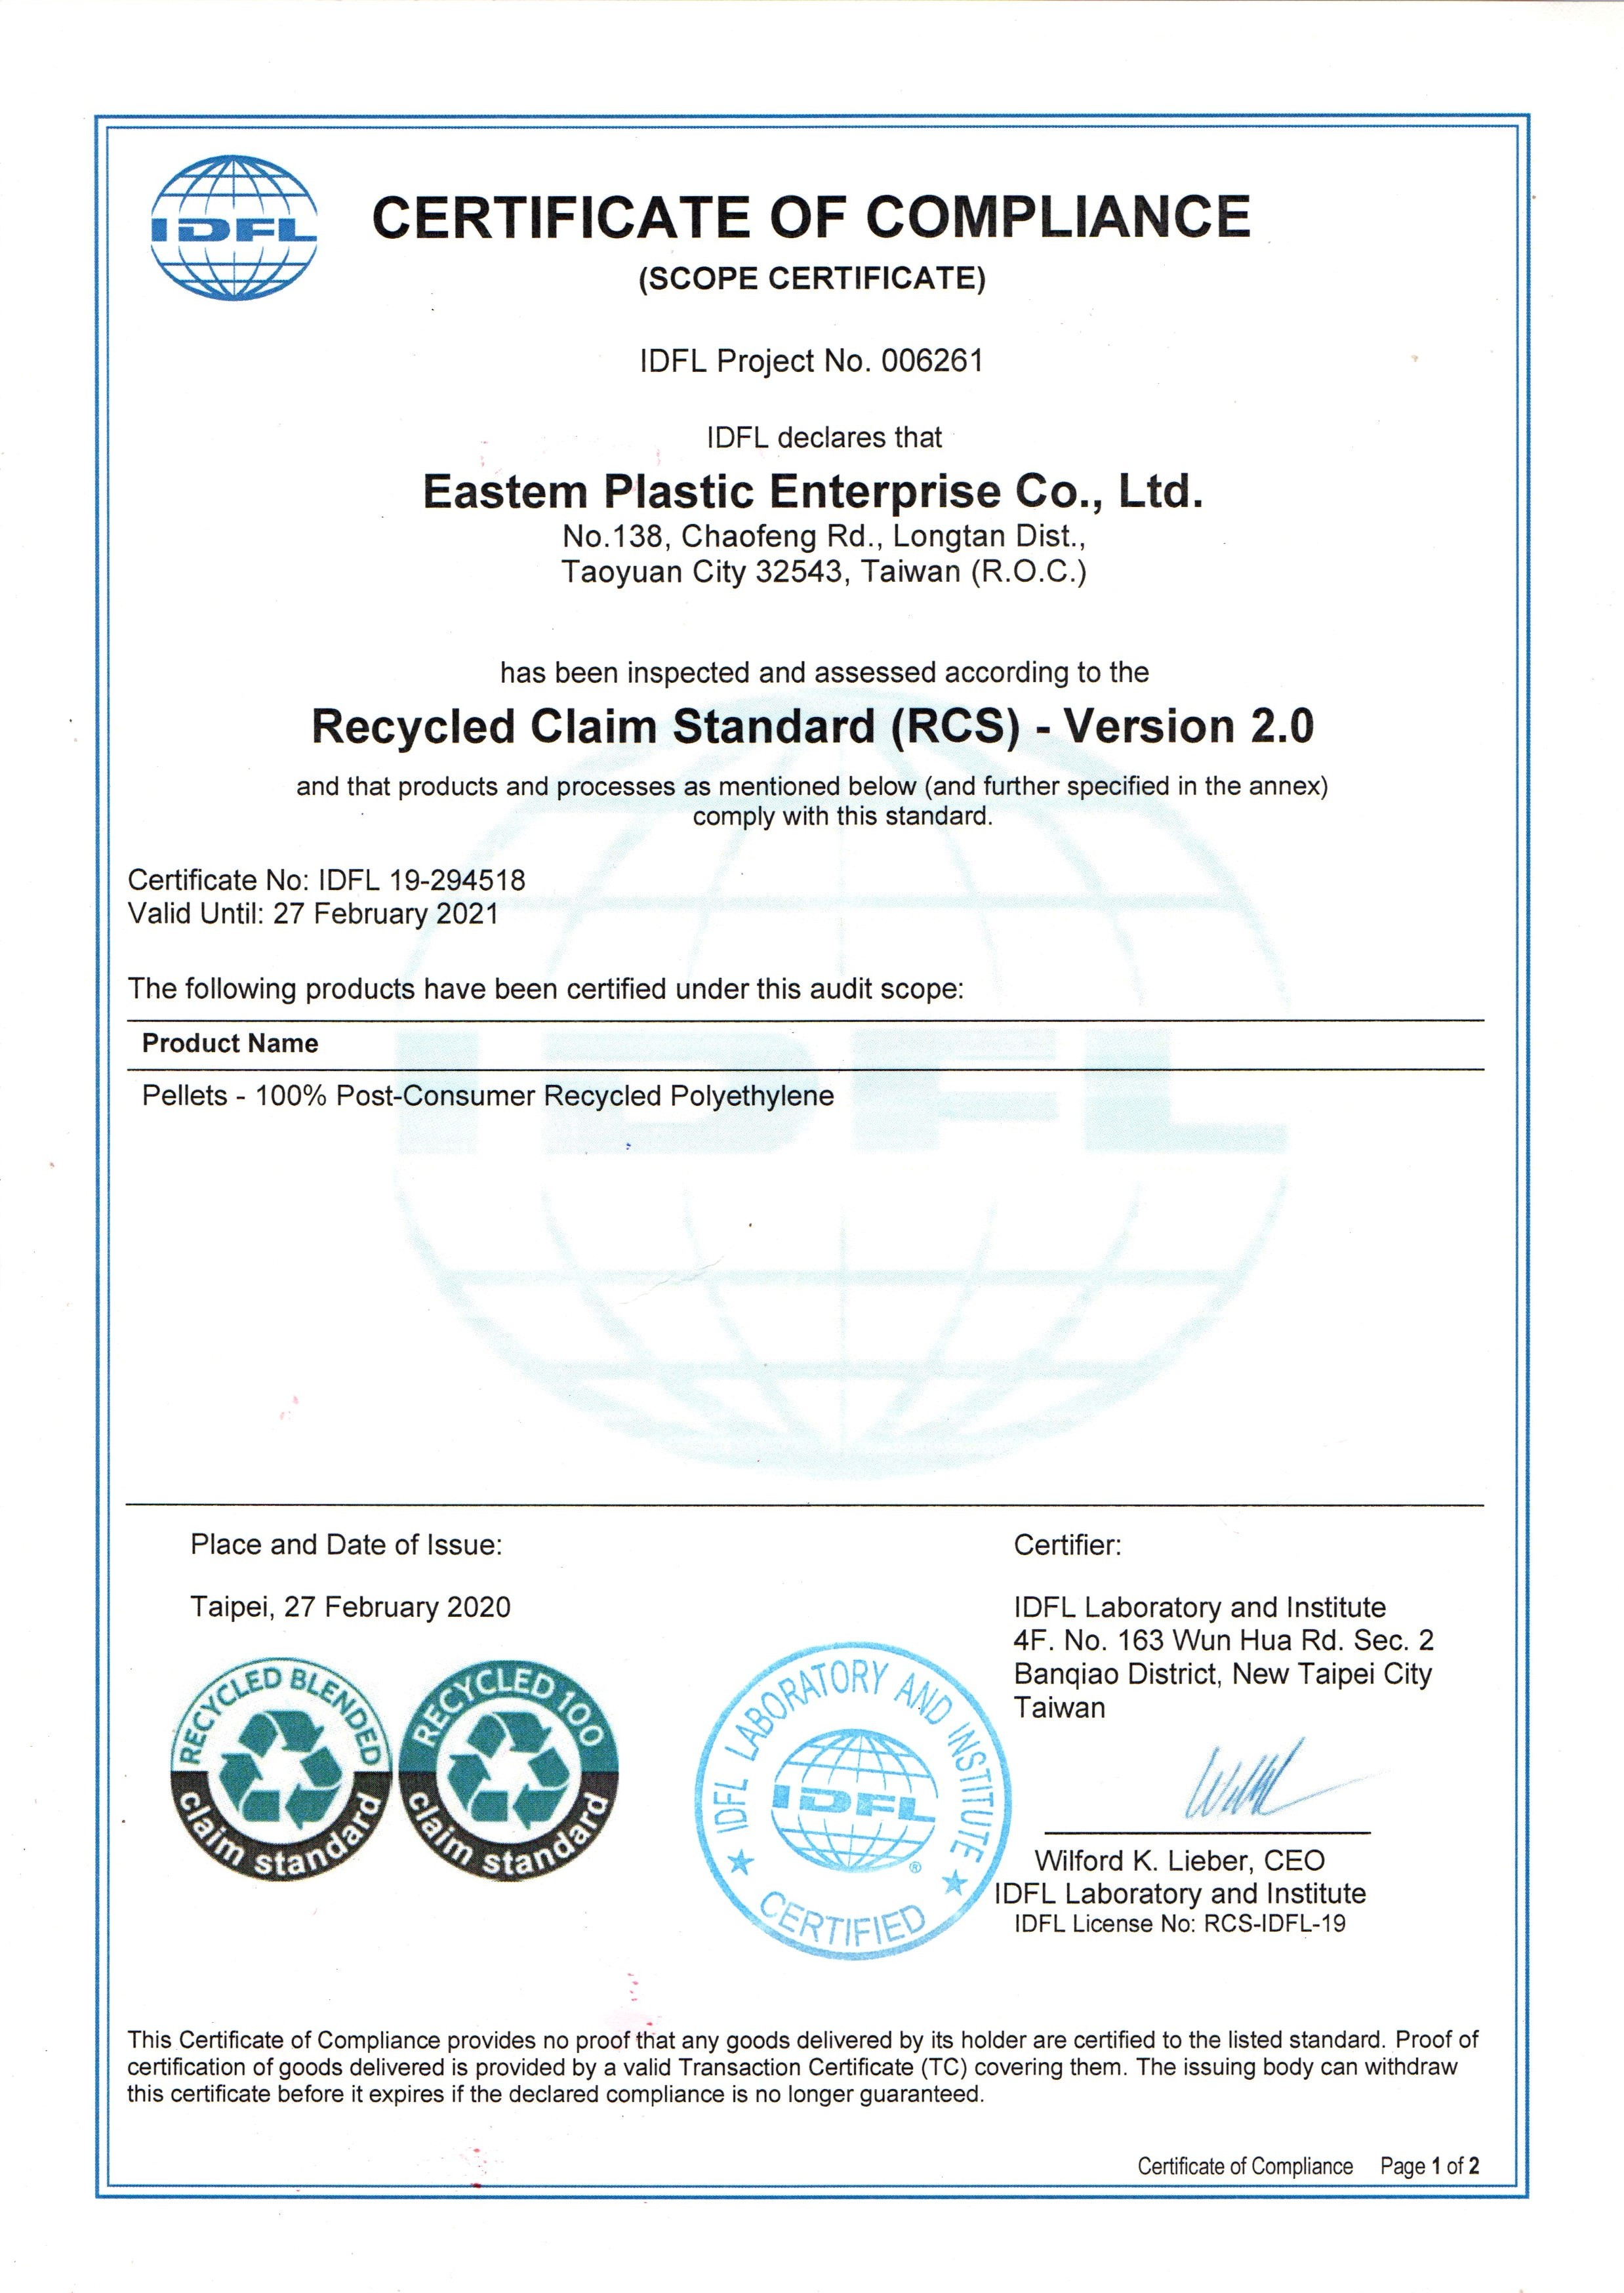 Certificate of Recycled Claim Standard(RCS)